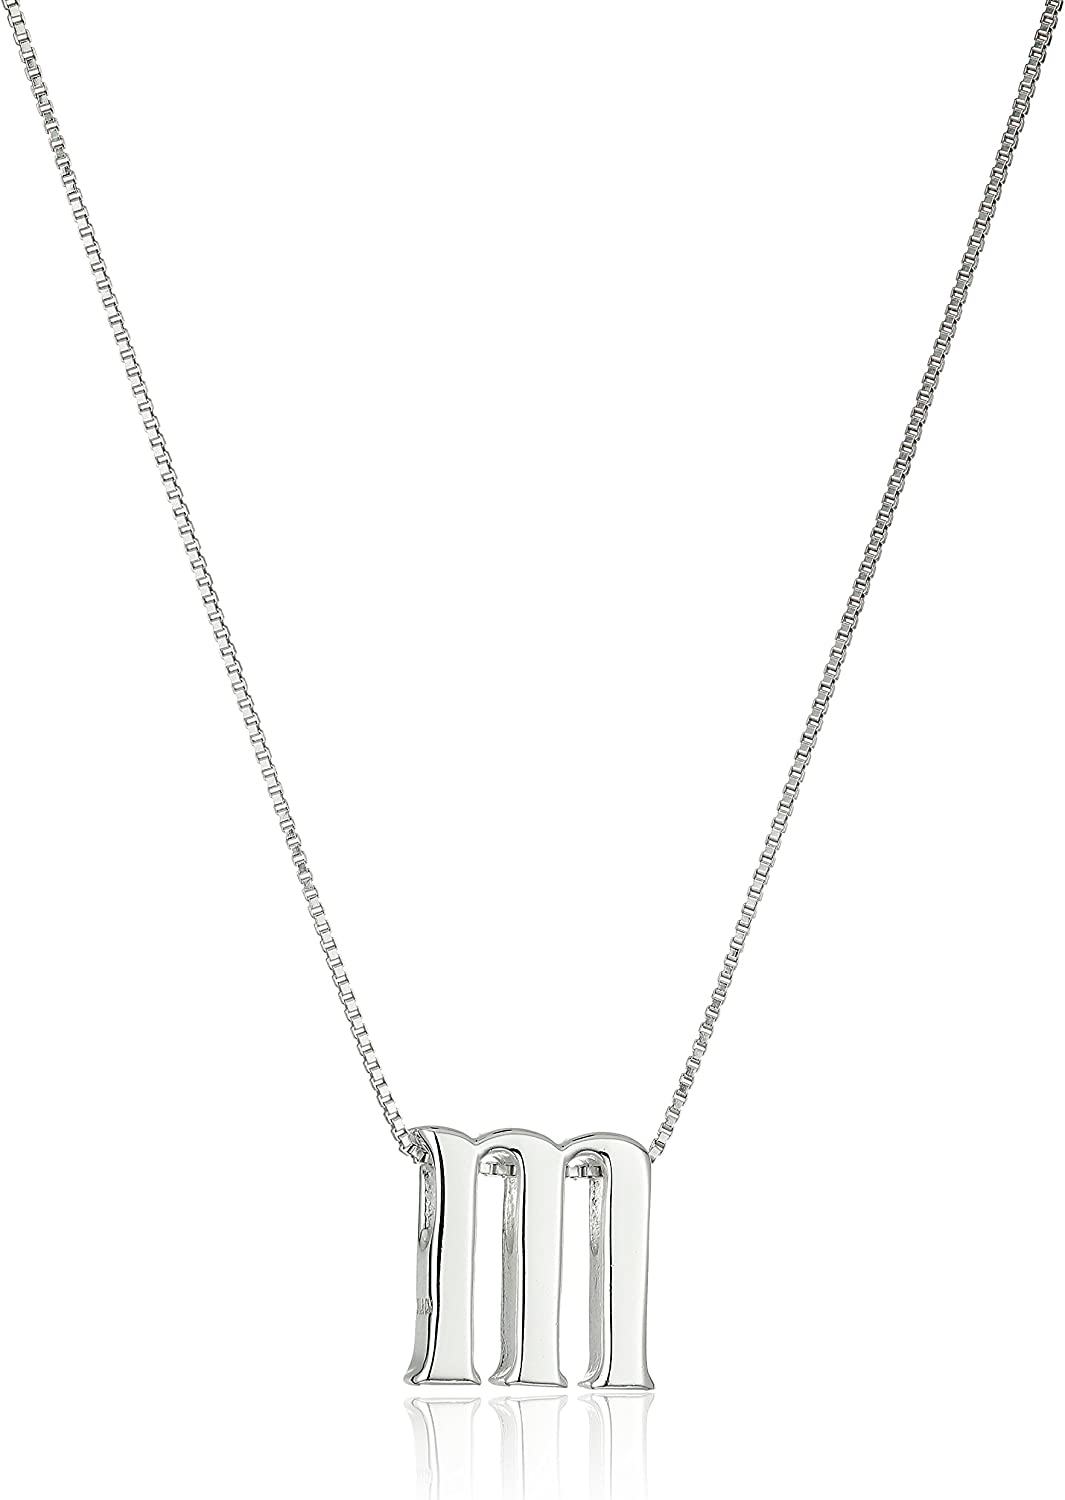 Amazon Collection Amazon Essentials Sterling Silver Slide Initial Pendant Necklace, 18""